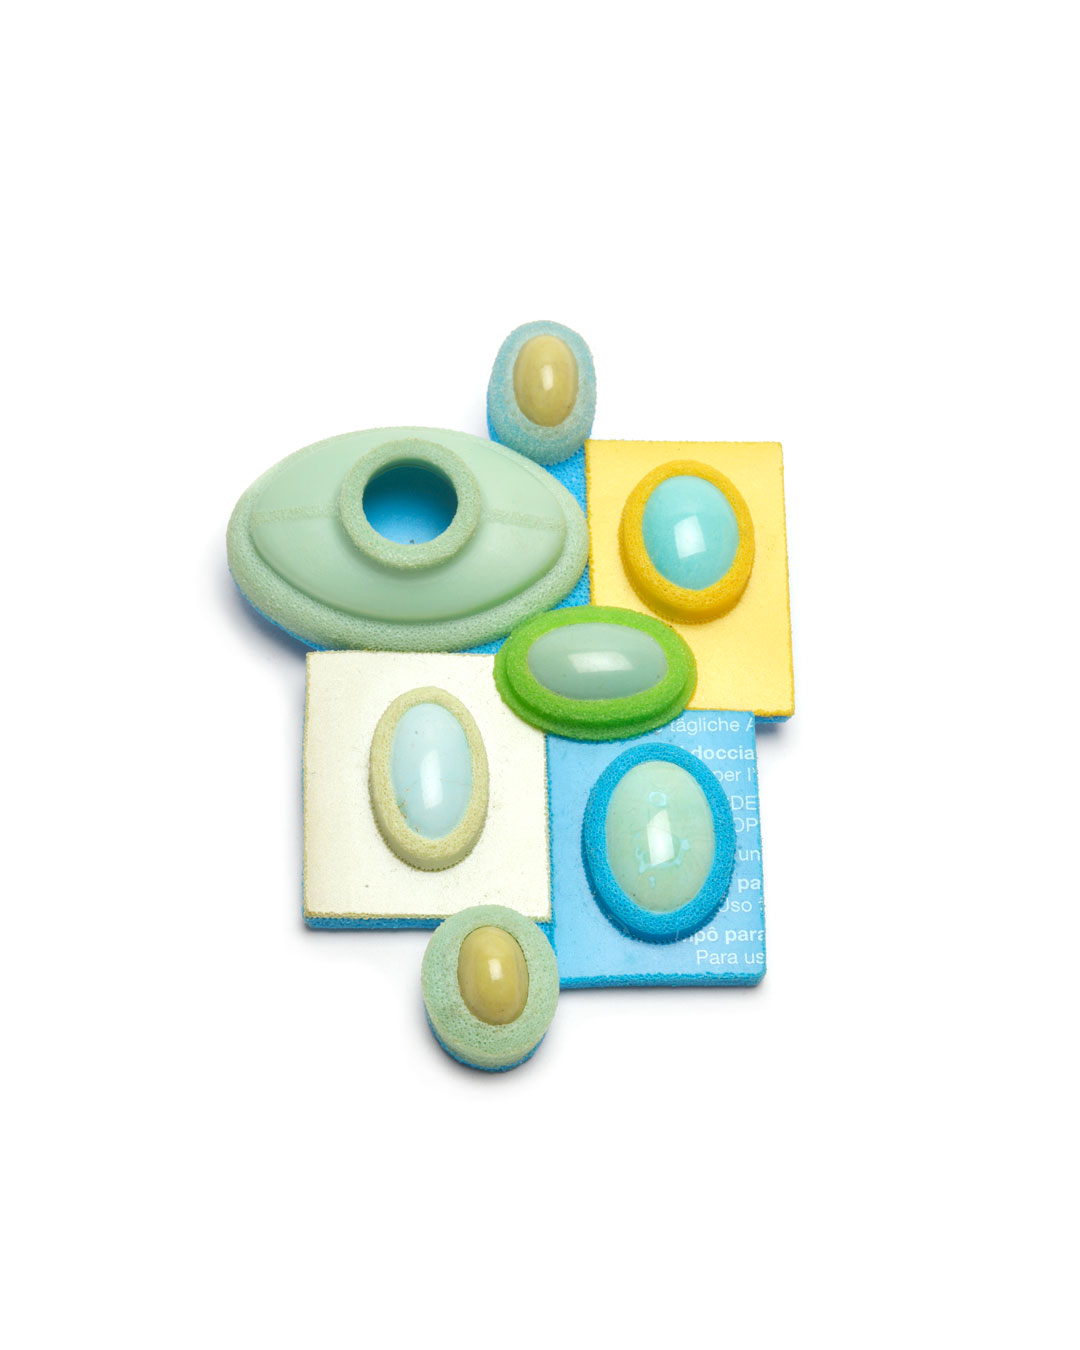 Ute Eitzenhöfer, Precious Mix 1, 2004, brooch; plastic (from packaging), turquoise, serpentine, silver, 80 x 60 x 18 mm